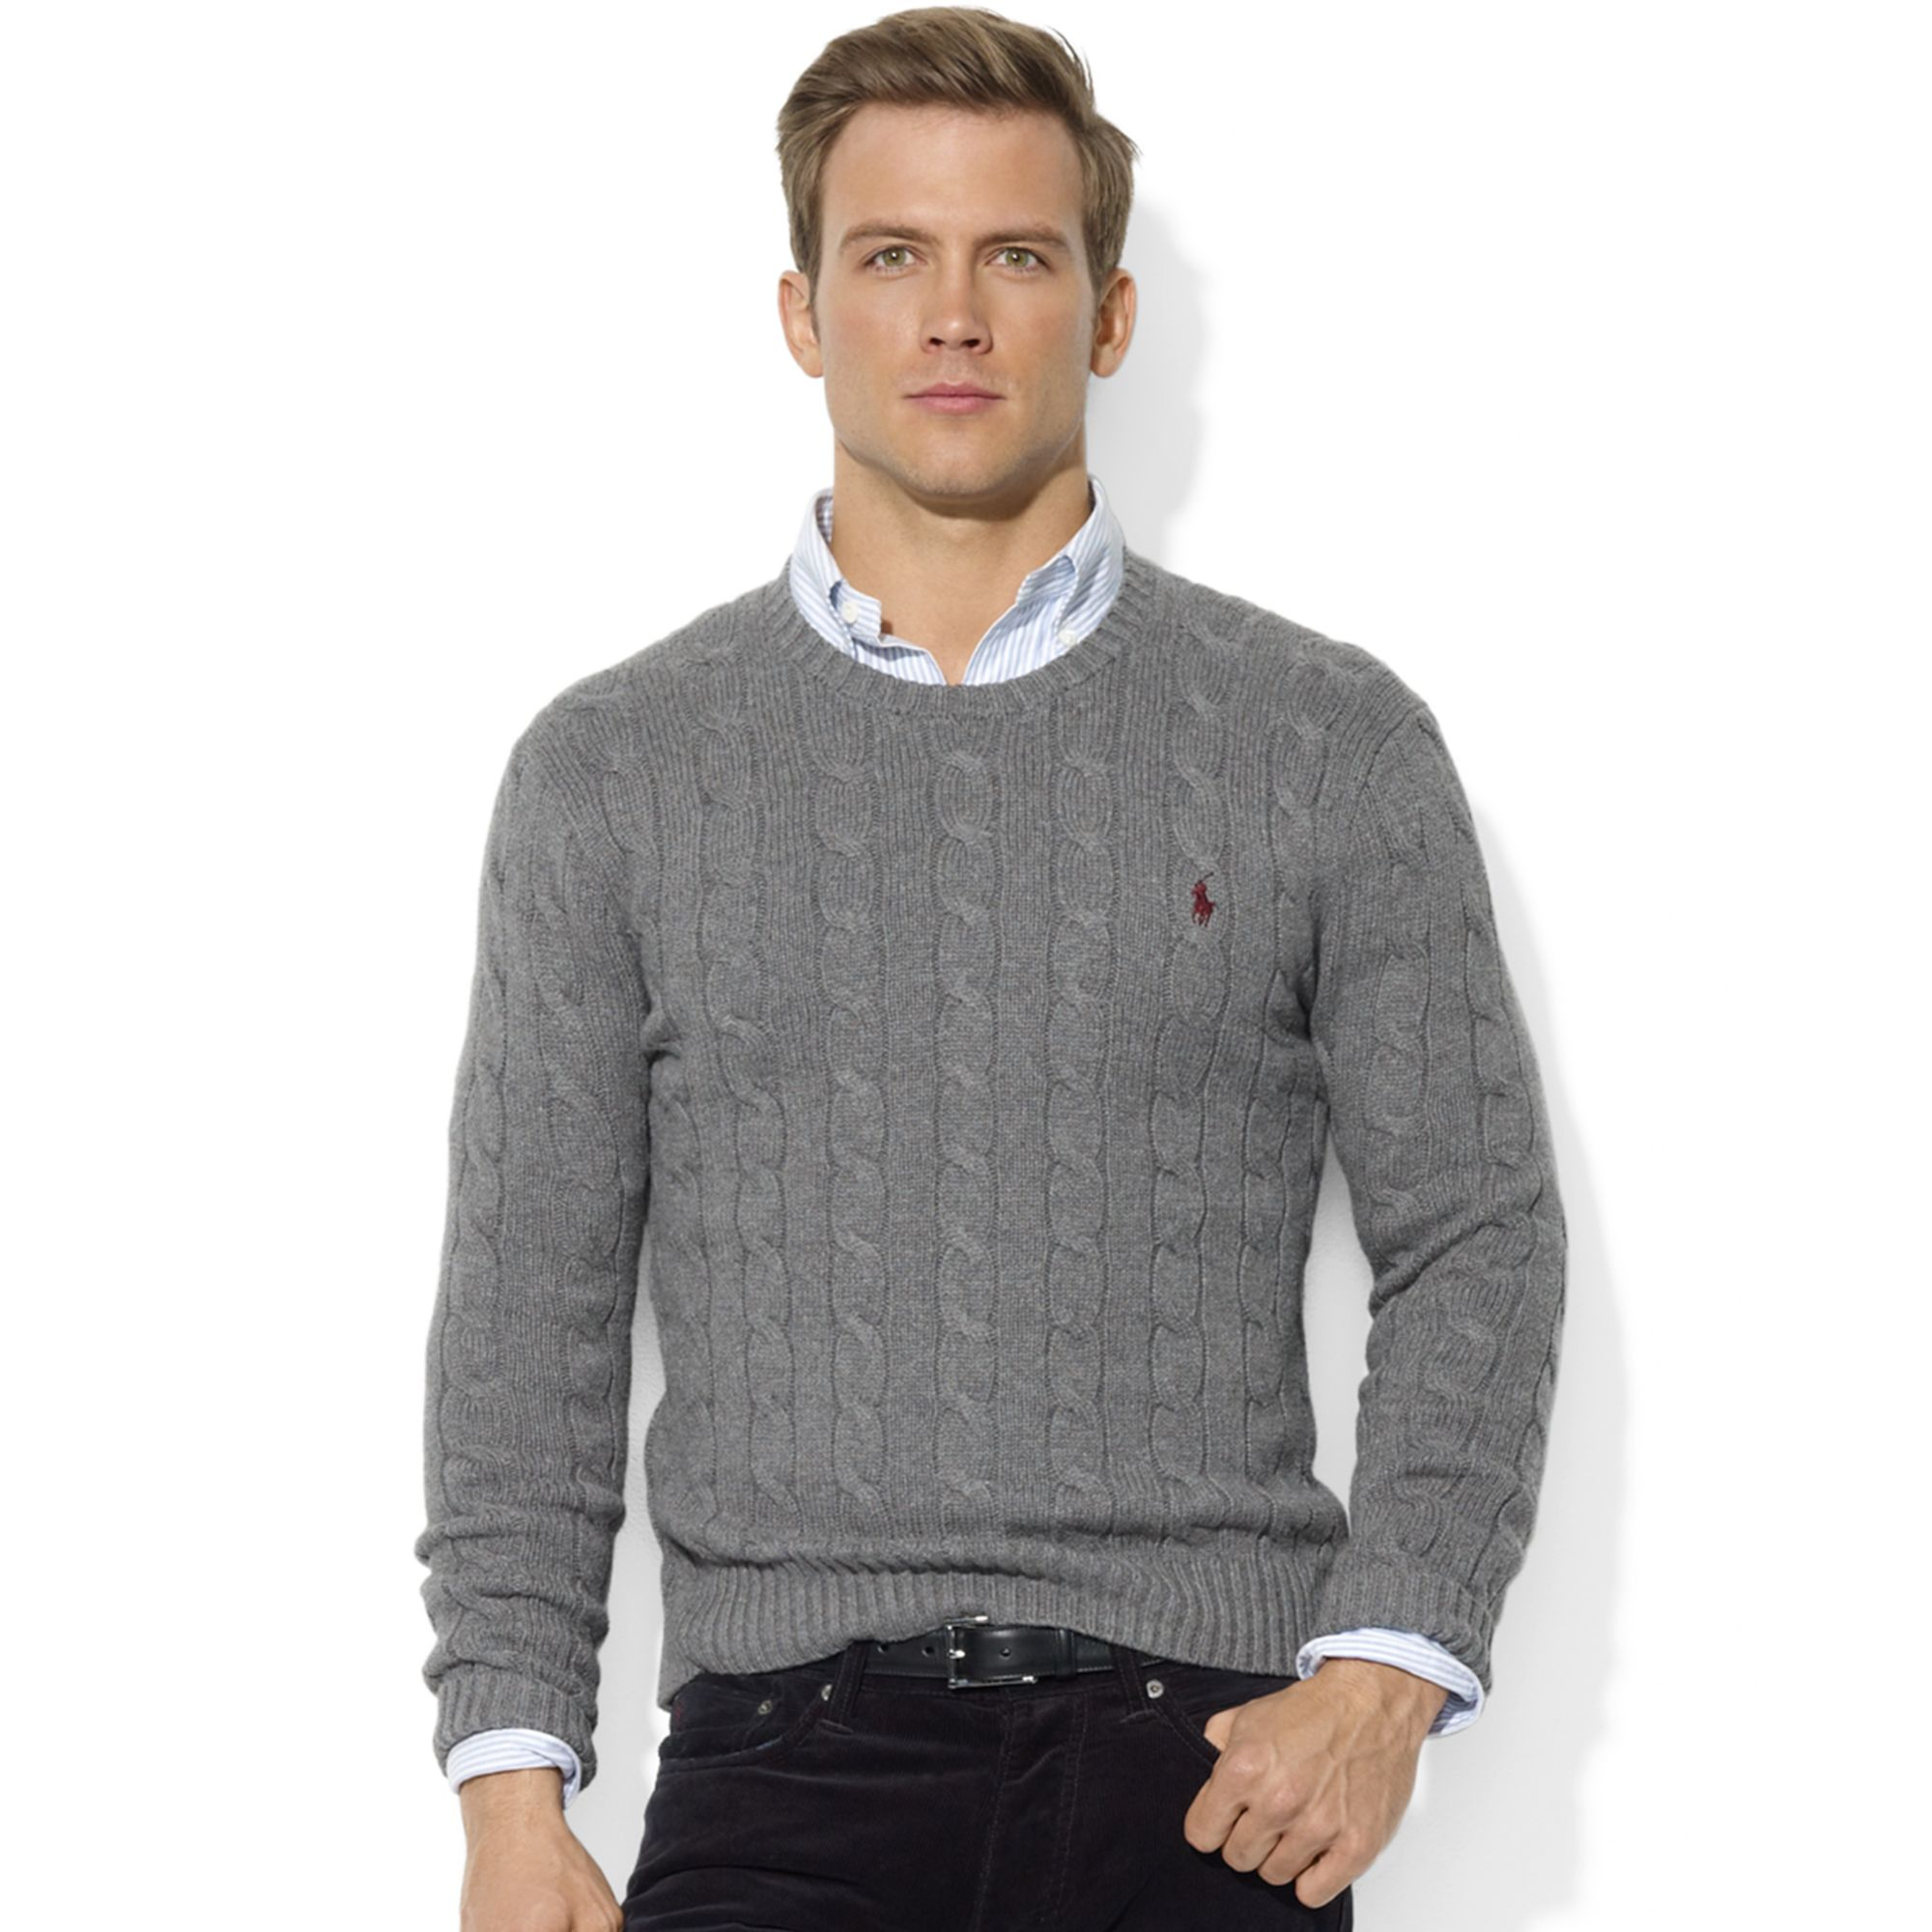 Lauren Roving Crew Neck Cable Cotton Sweater In Gray For Men Lyst